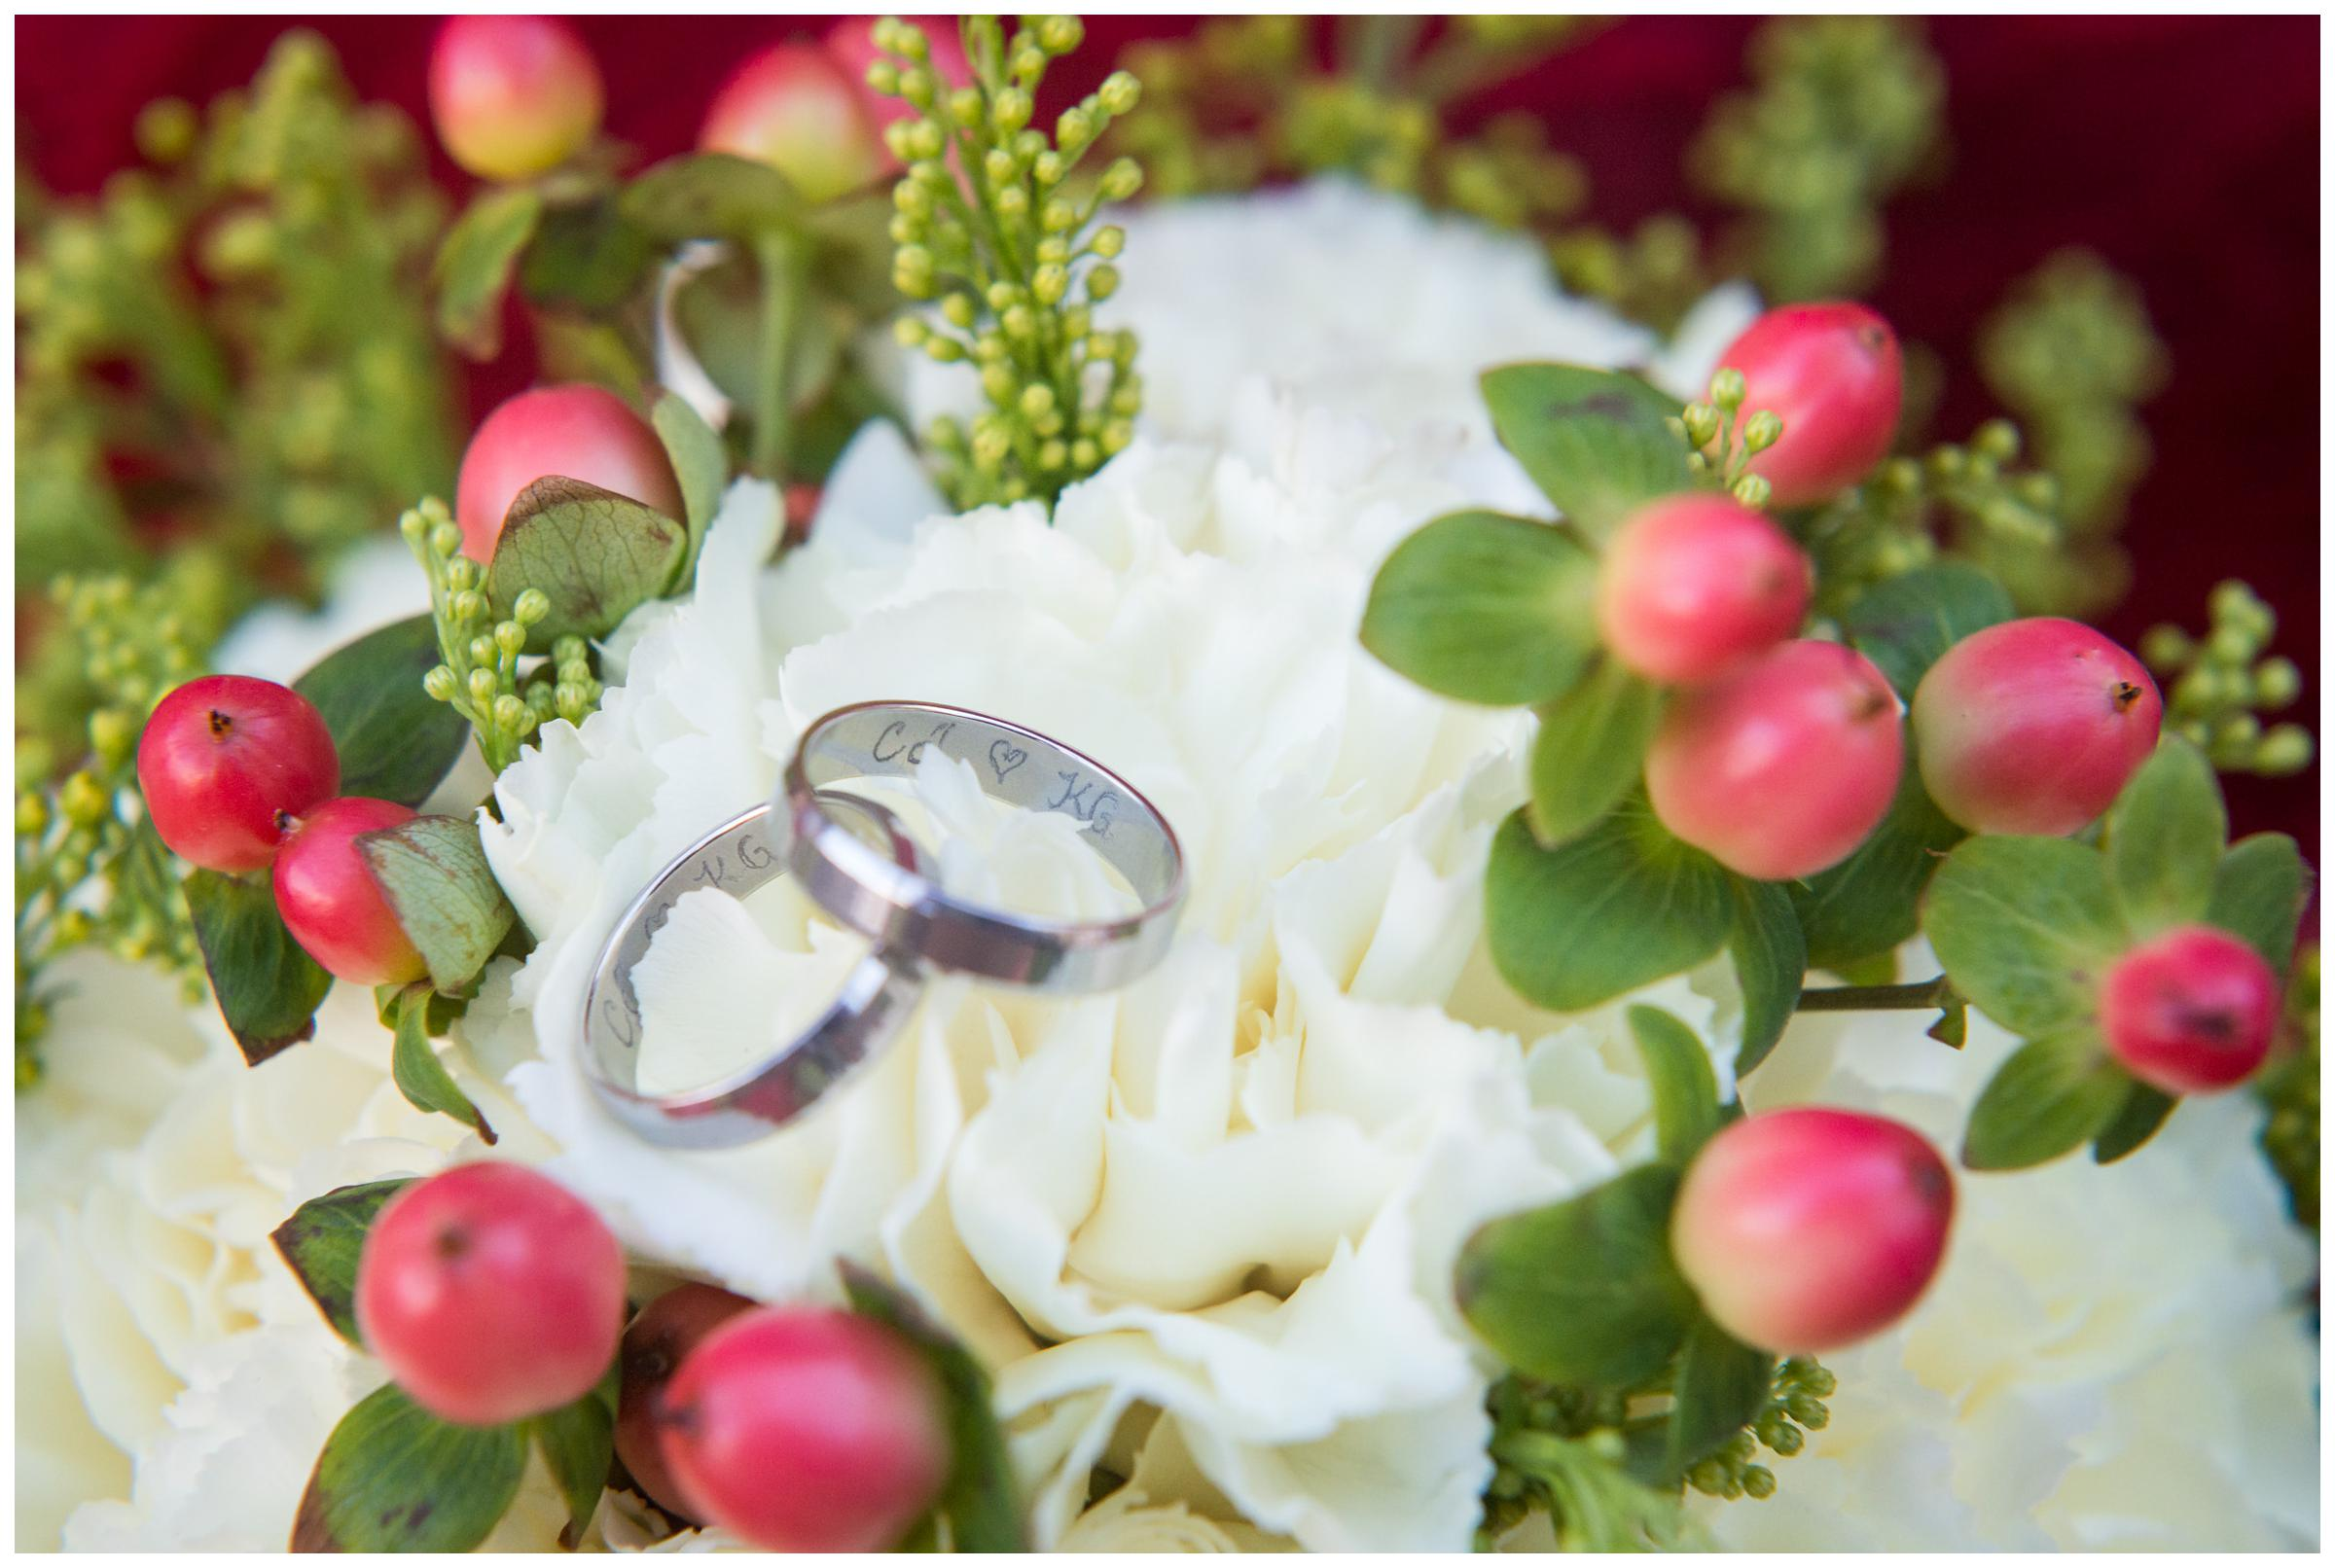 engraved wedding rings on bouquet